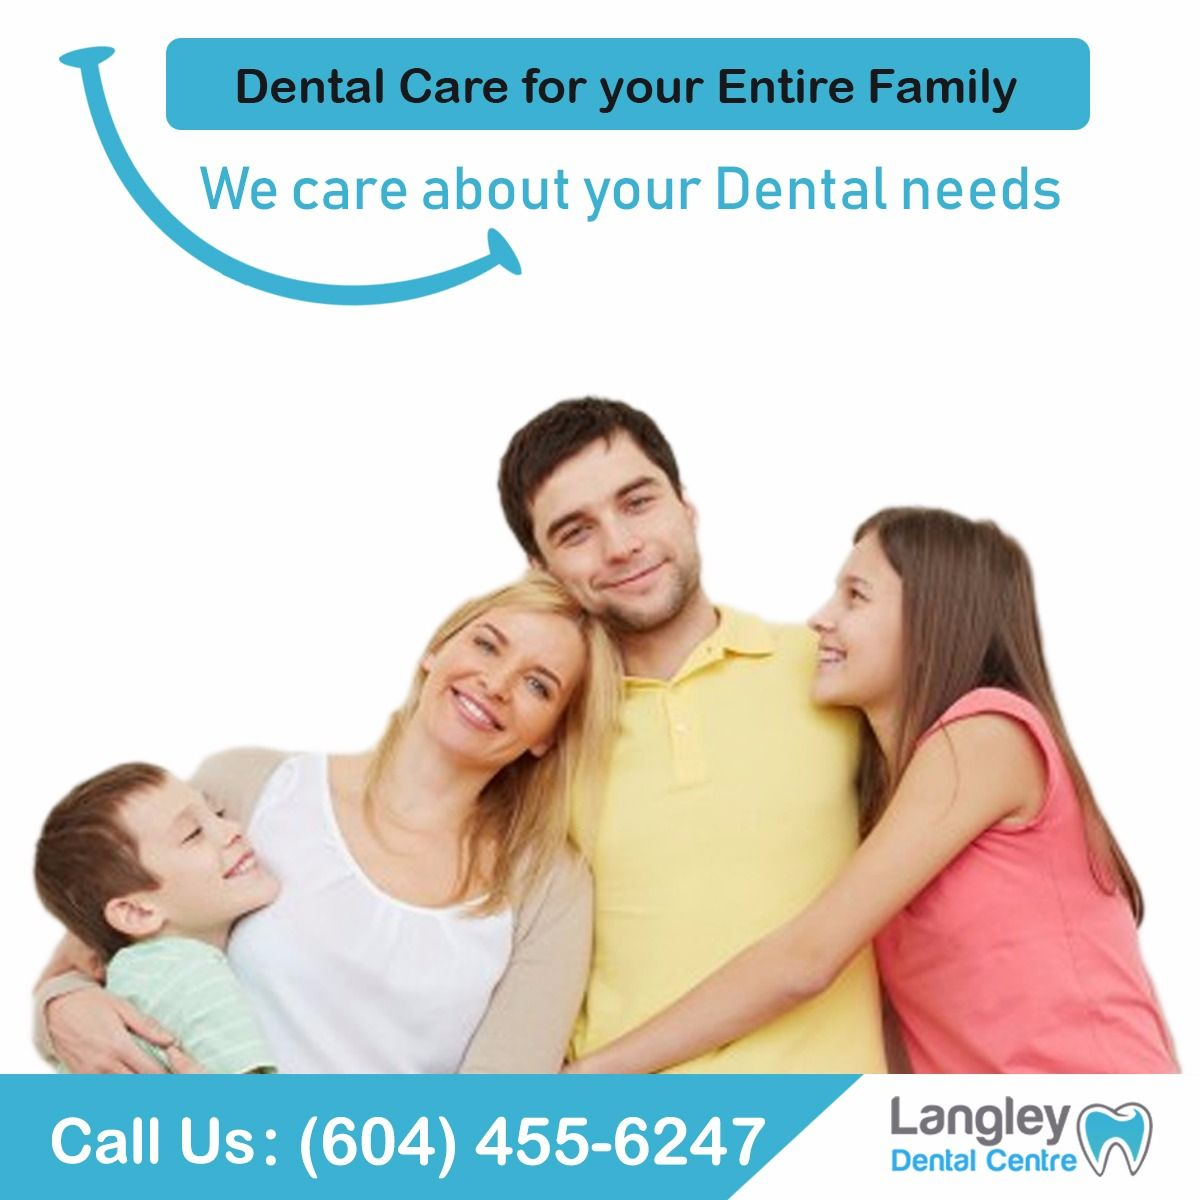 Dentist accepting new patients langley bc dentist near